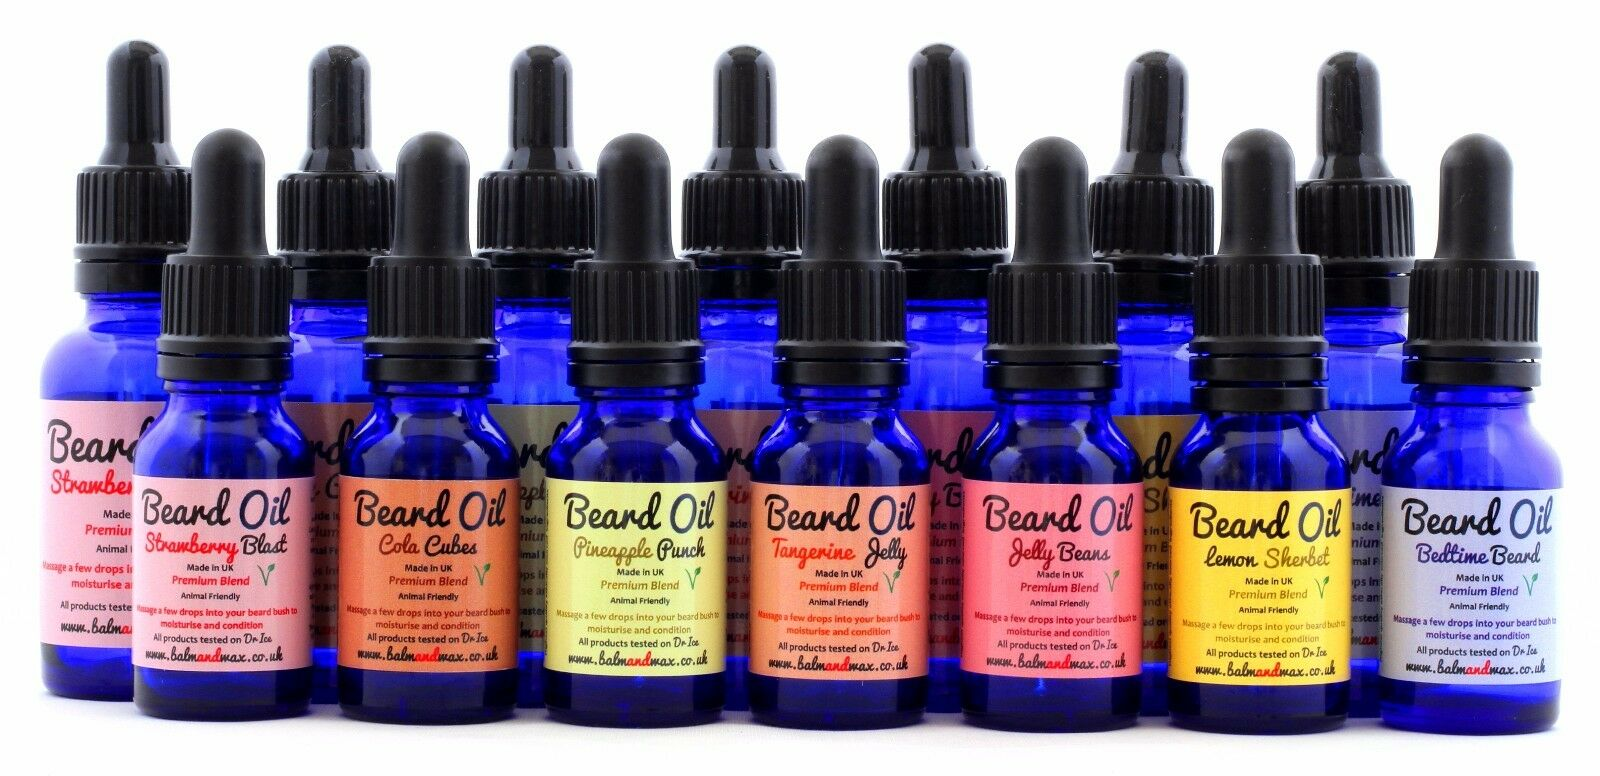 Premium Beard Oil Treatment - Vegan - Sweet Shop Scents - Dr